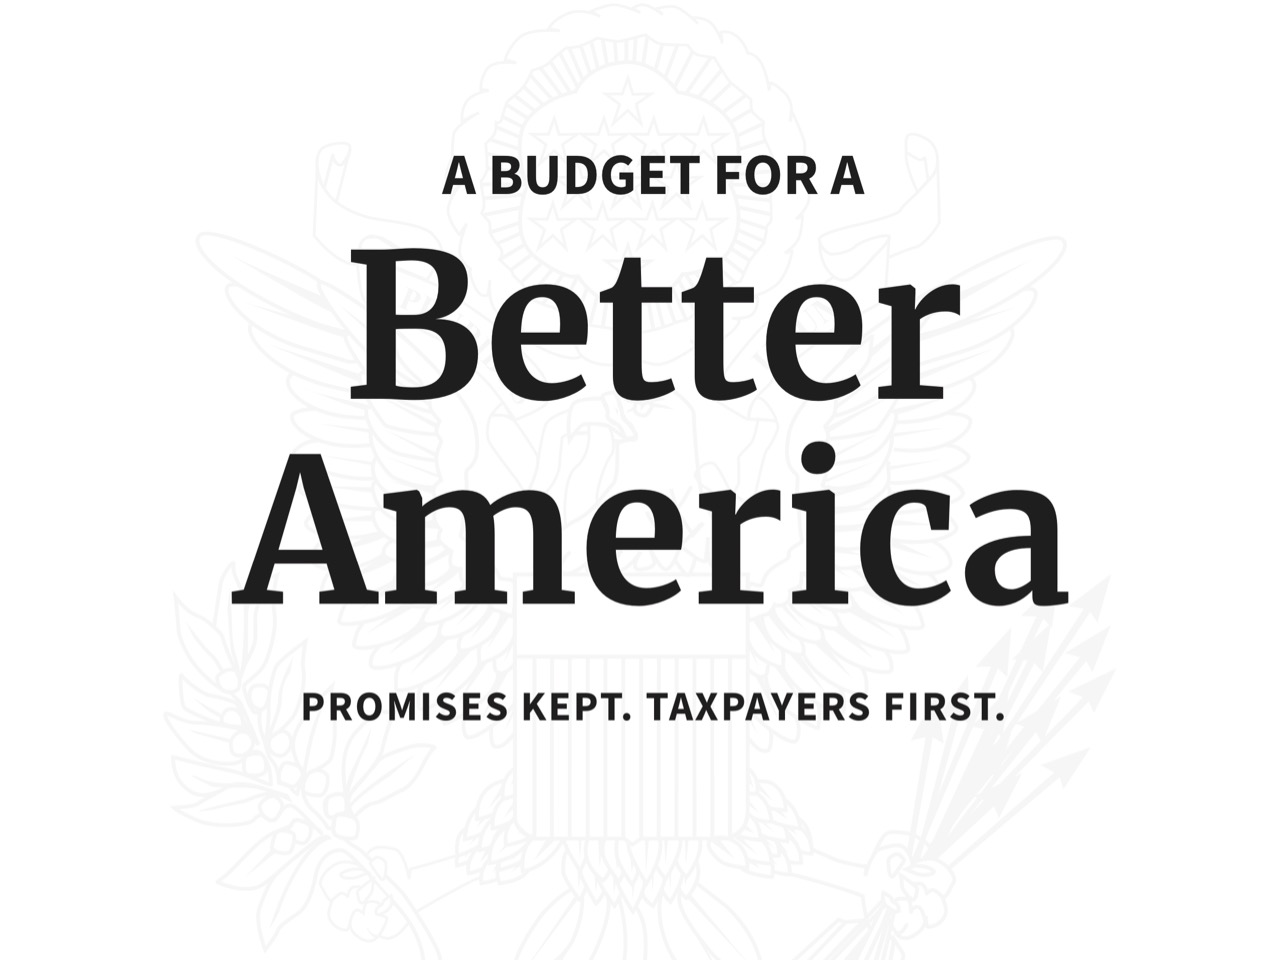 President Trump releases new budget with cuts for Indian Country programs